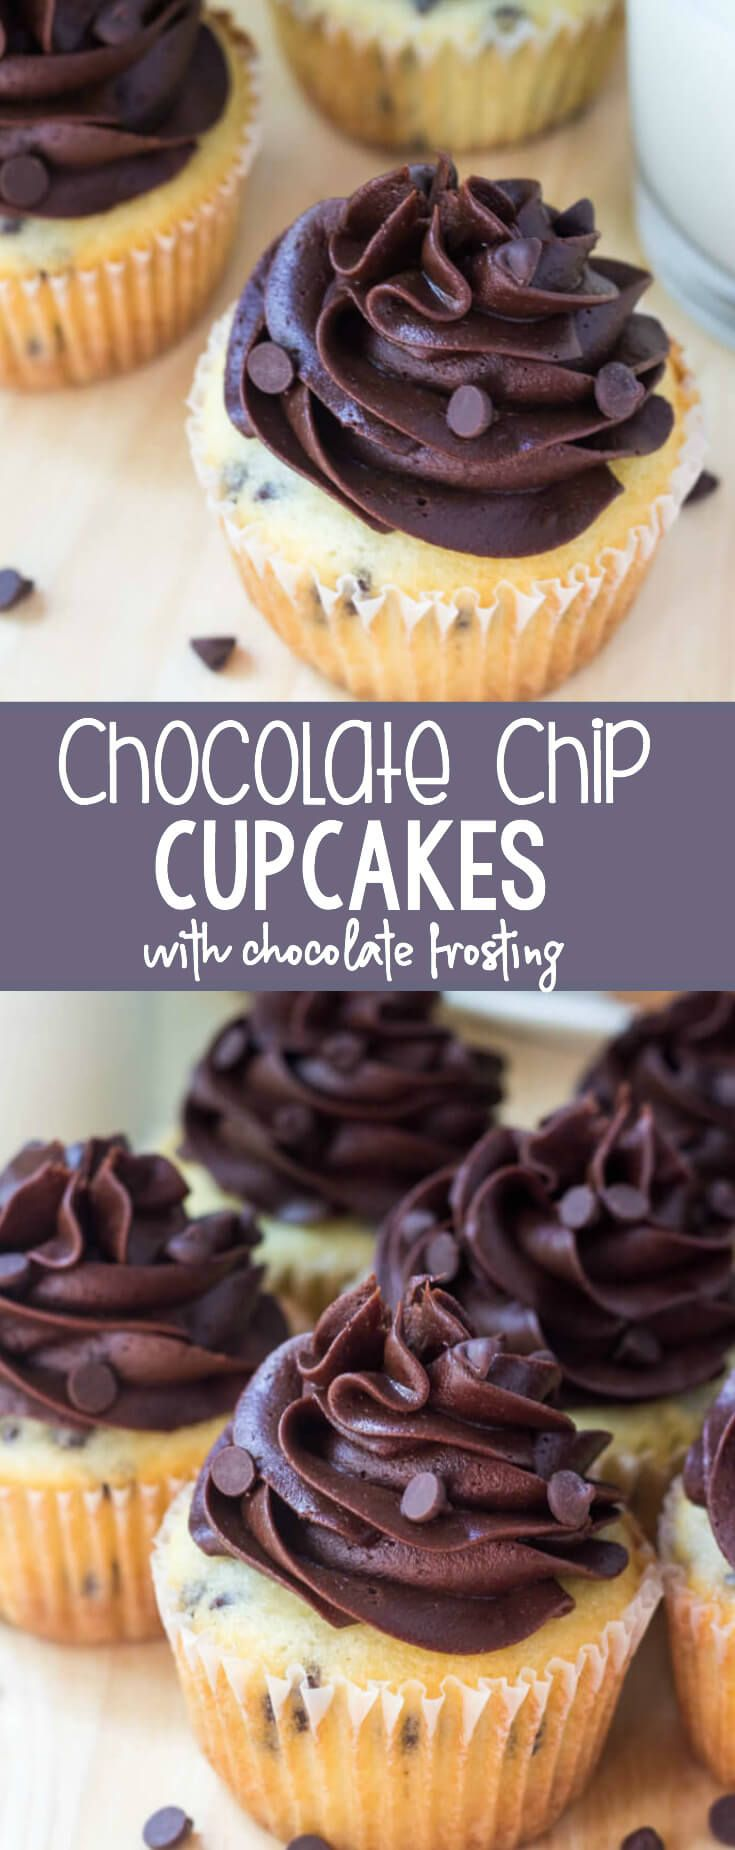 These chocolate chip cupcakes with chocolate frost…